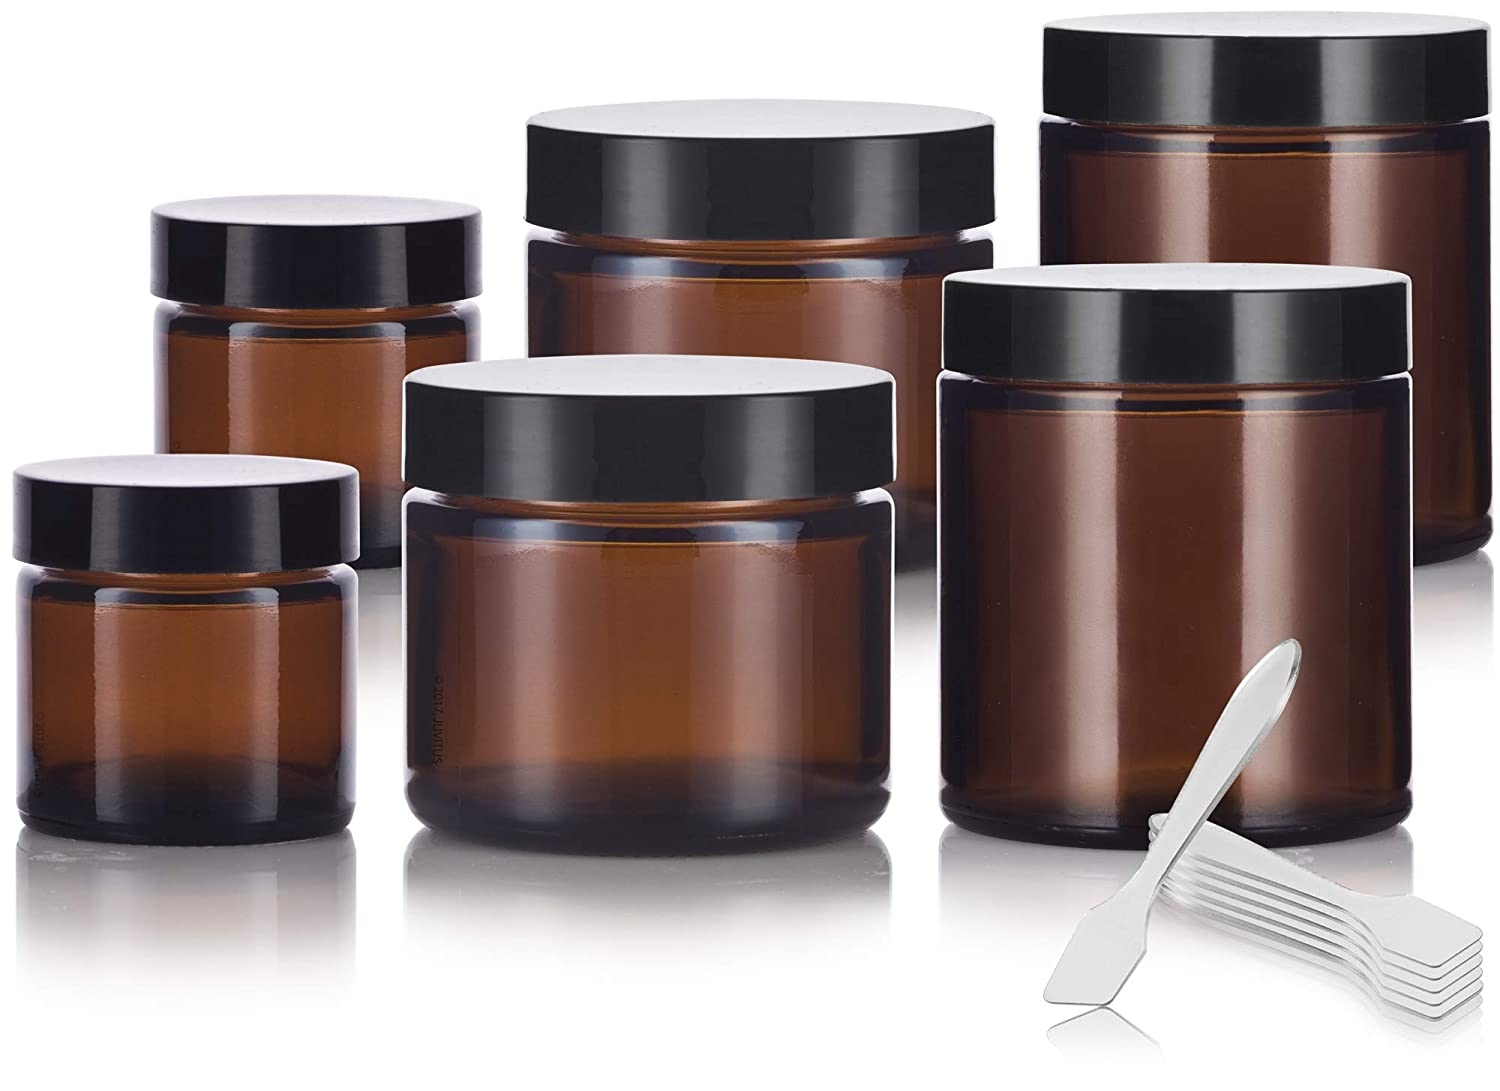 6 piece Amber Glass Straight Sided Jar Multi Size Set Includes 2-1 oz, 2-2 oz, and 2-4 oz Amber Glass Jars with Black Lids Spatulas for Aromatherapy, Essential Oils, Travel and Home